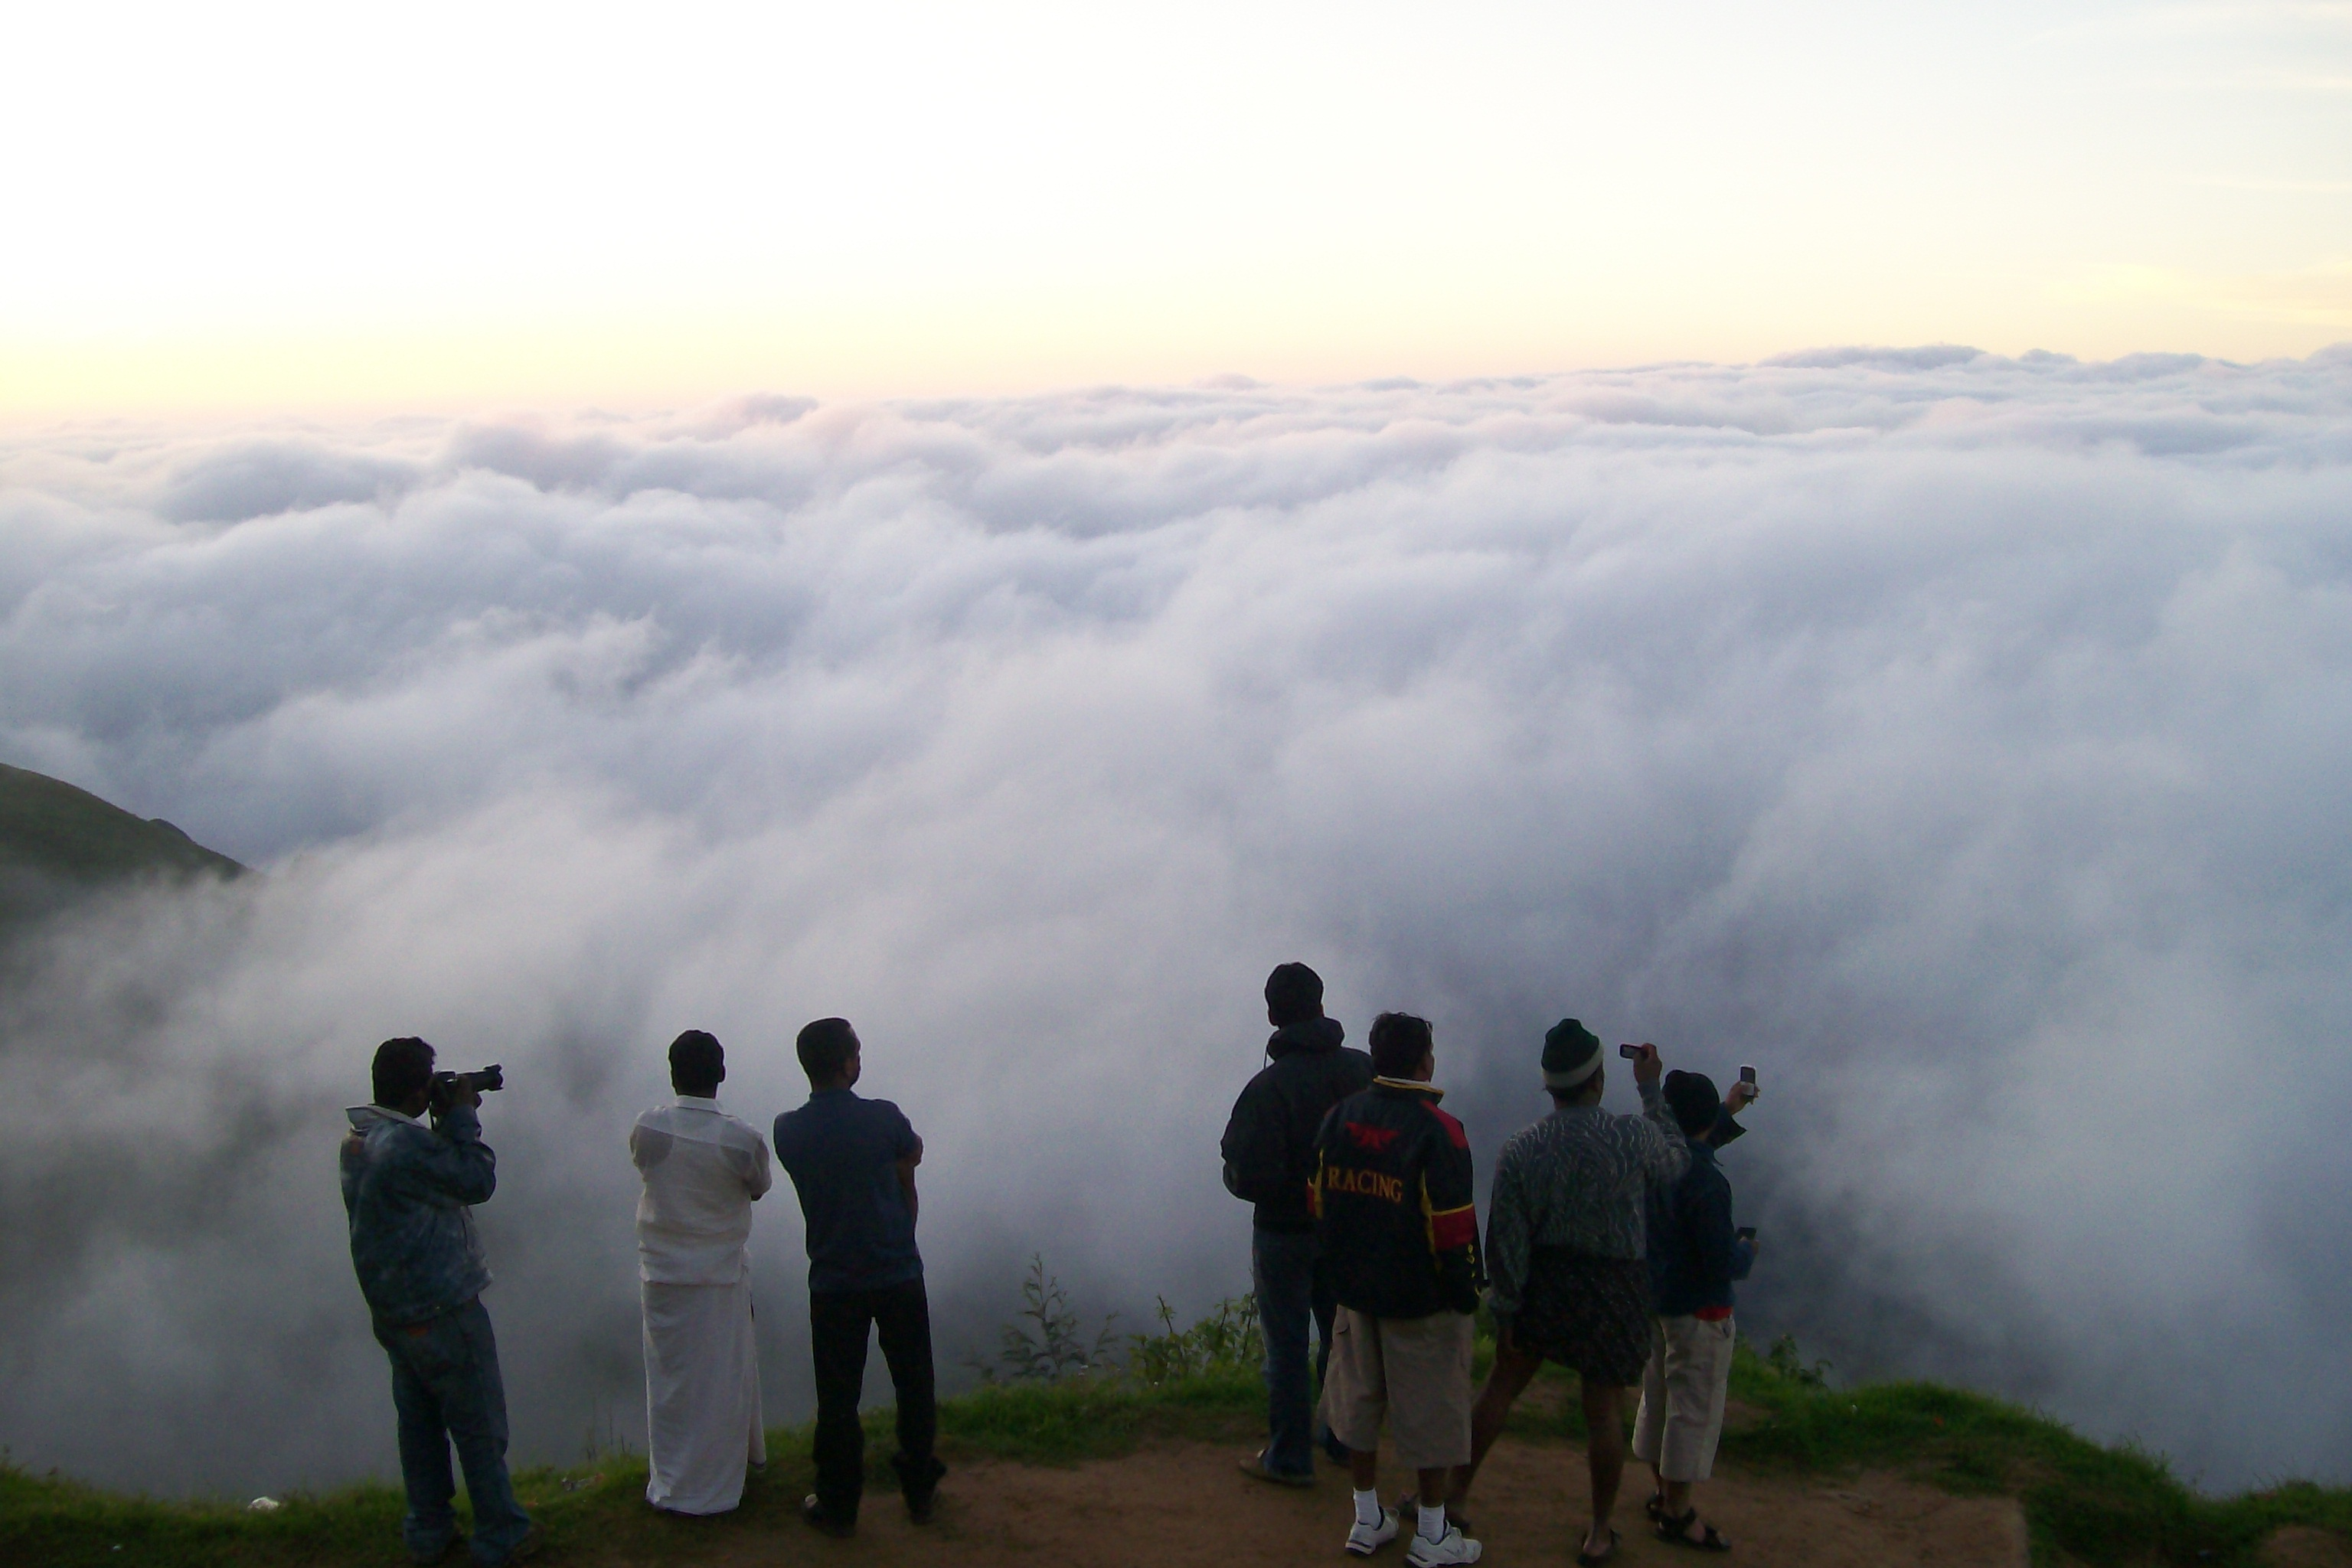 HEAVENLY SHOWERS IN MUNNAR